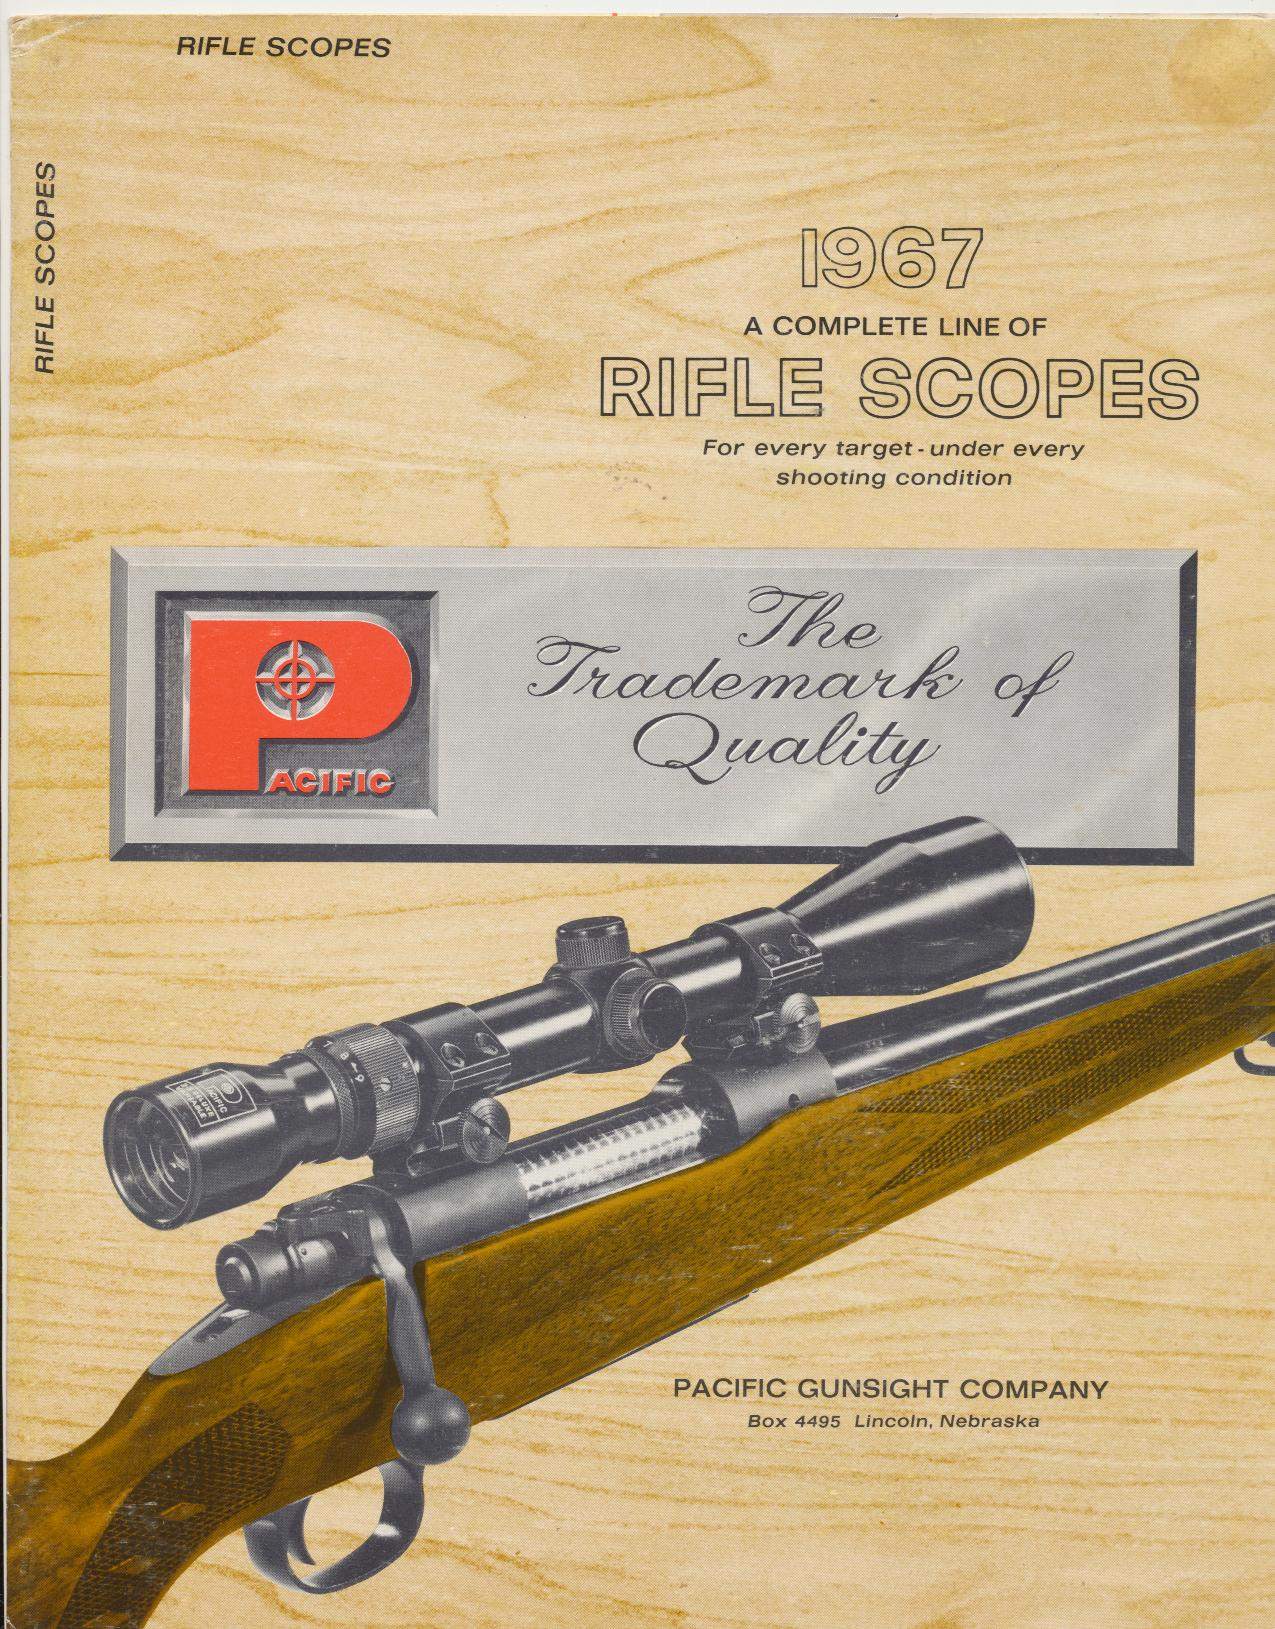 1967 Pacific Gunsight Co Rifle Scopes Catalog & Wall Chart